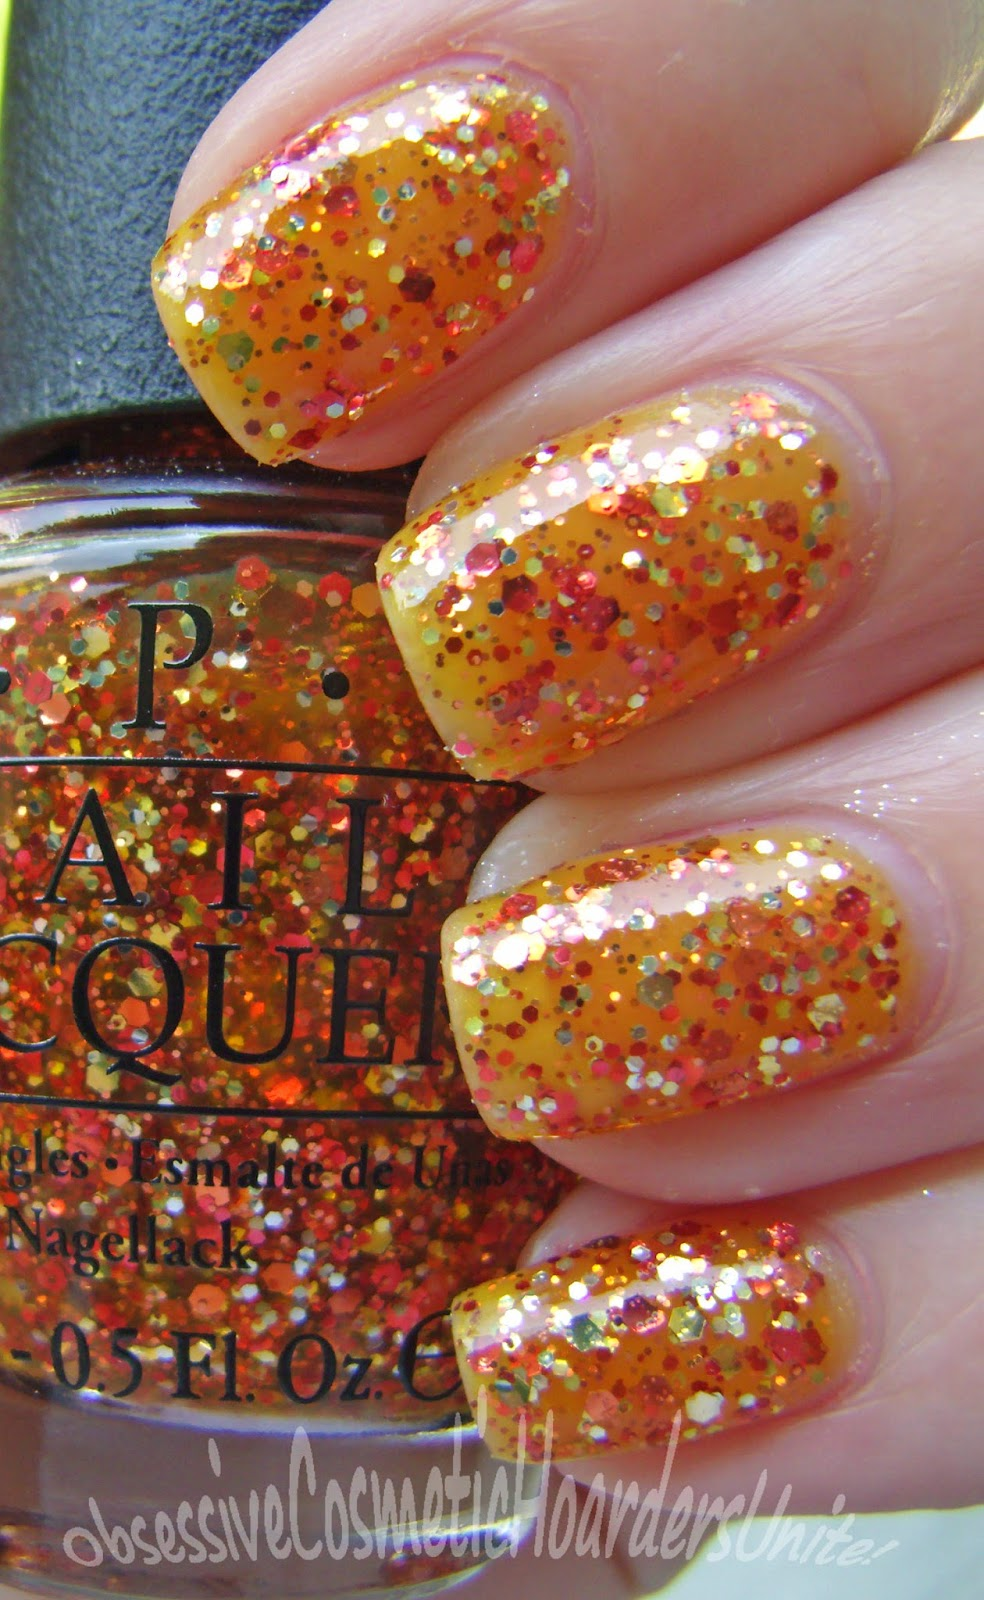 Opi Coca Cola Nail Polish Collection Partial: Obsessive Cosmetic Hoarders Unite!: NEW! OPI Coca Cola